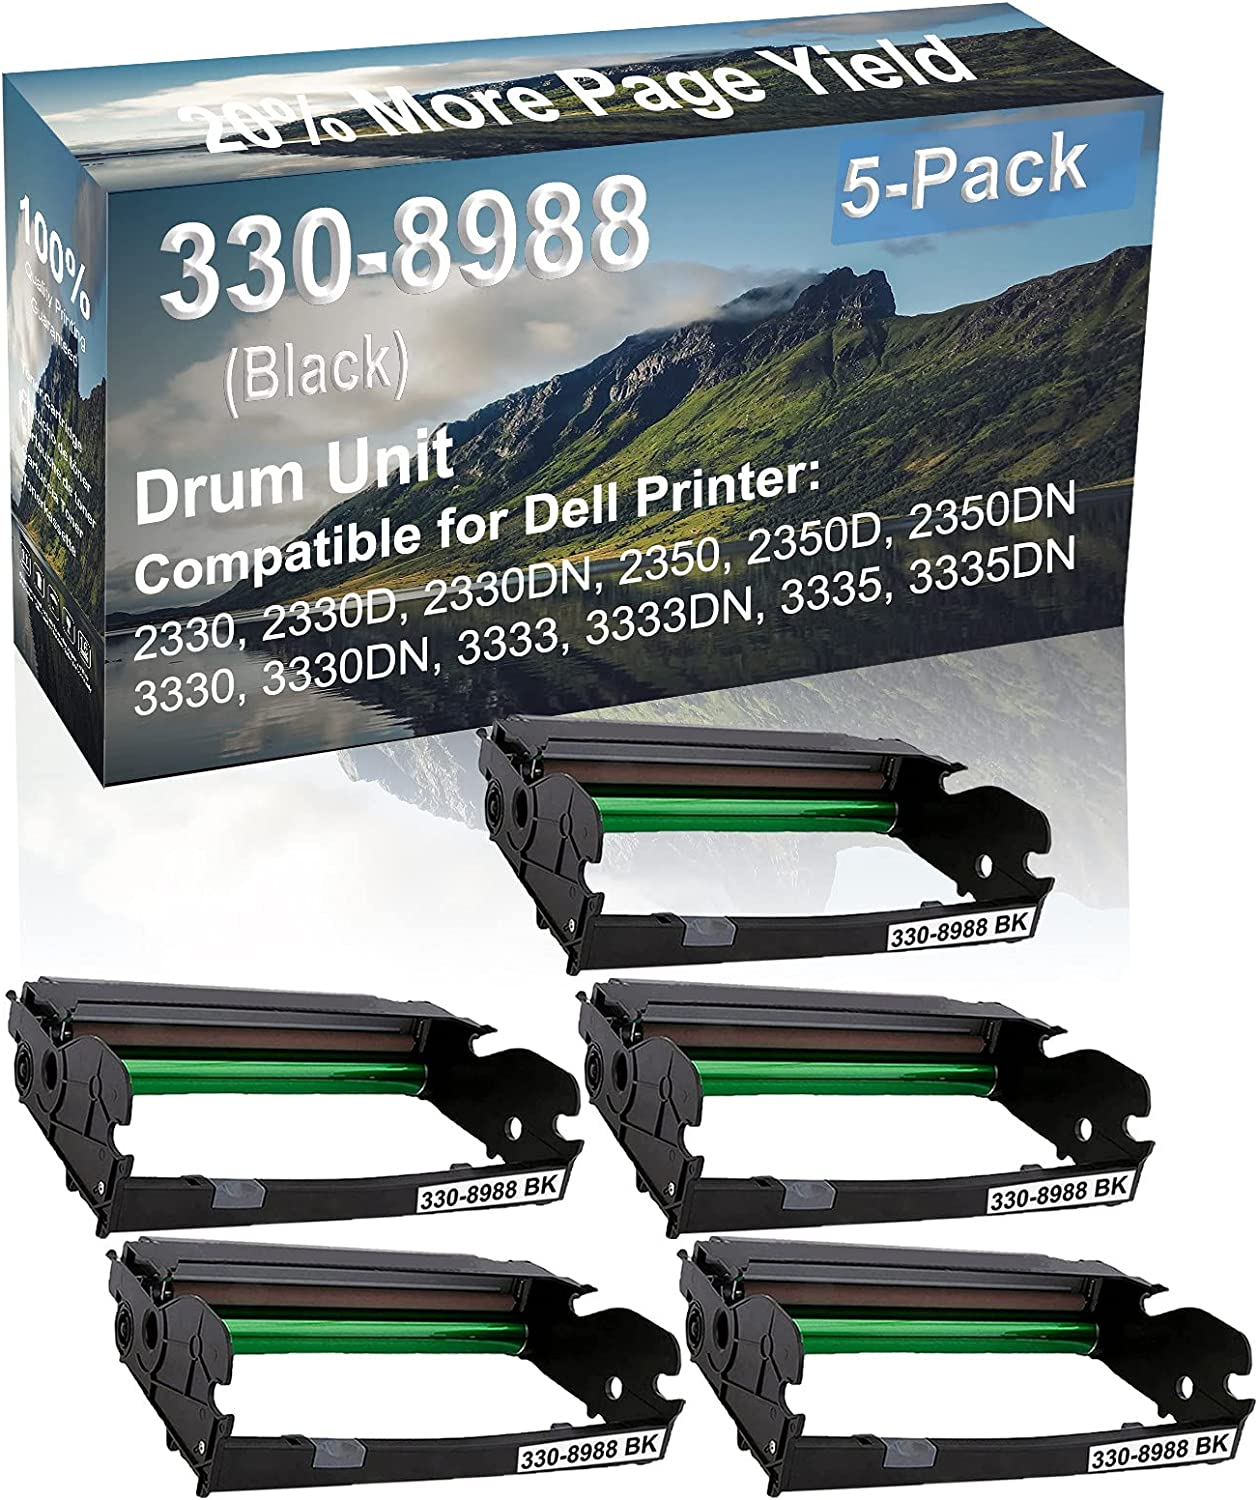 5-Pack Compatible Drum Unit (Black) Replacement for Dell 330-8988 Drum Kit use for Dell 3333, 3333DN, 3335, 3335DN Printer